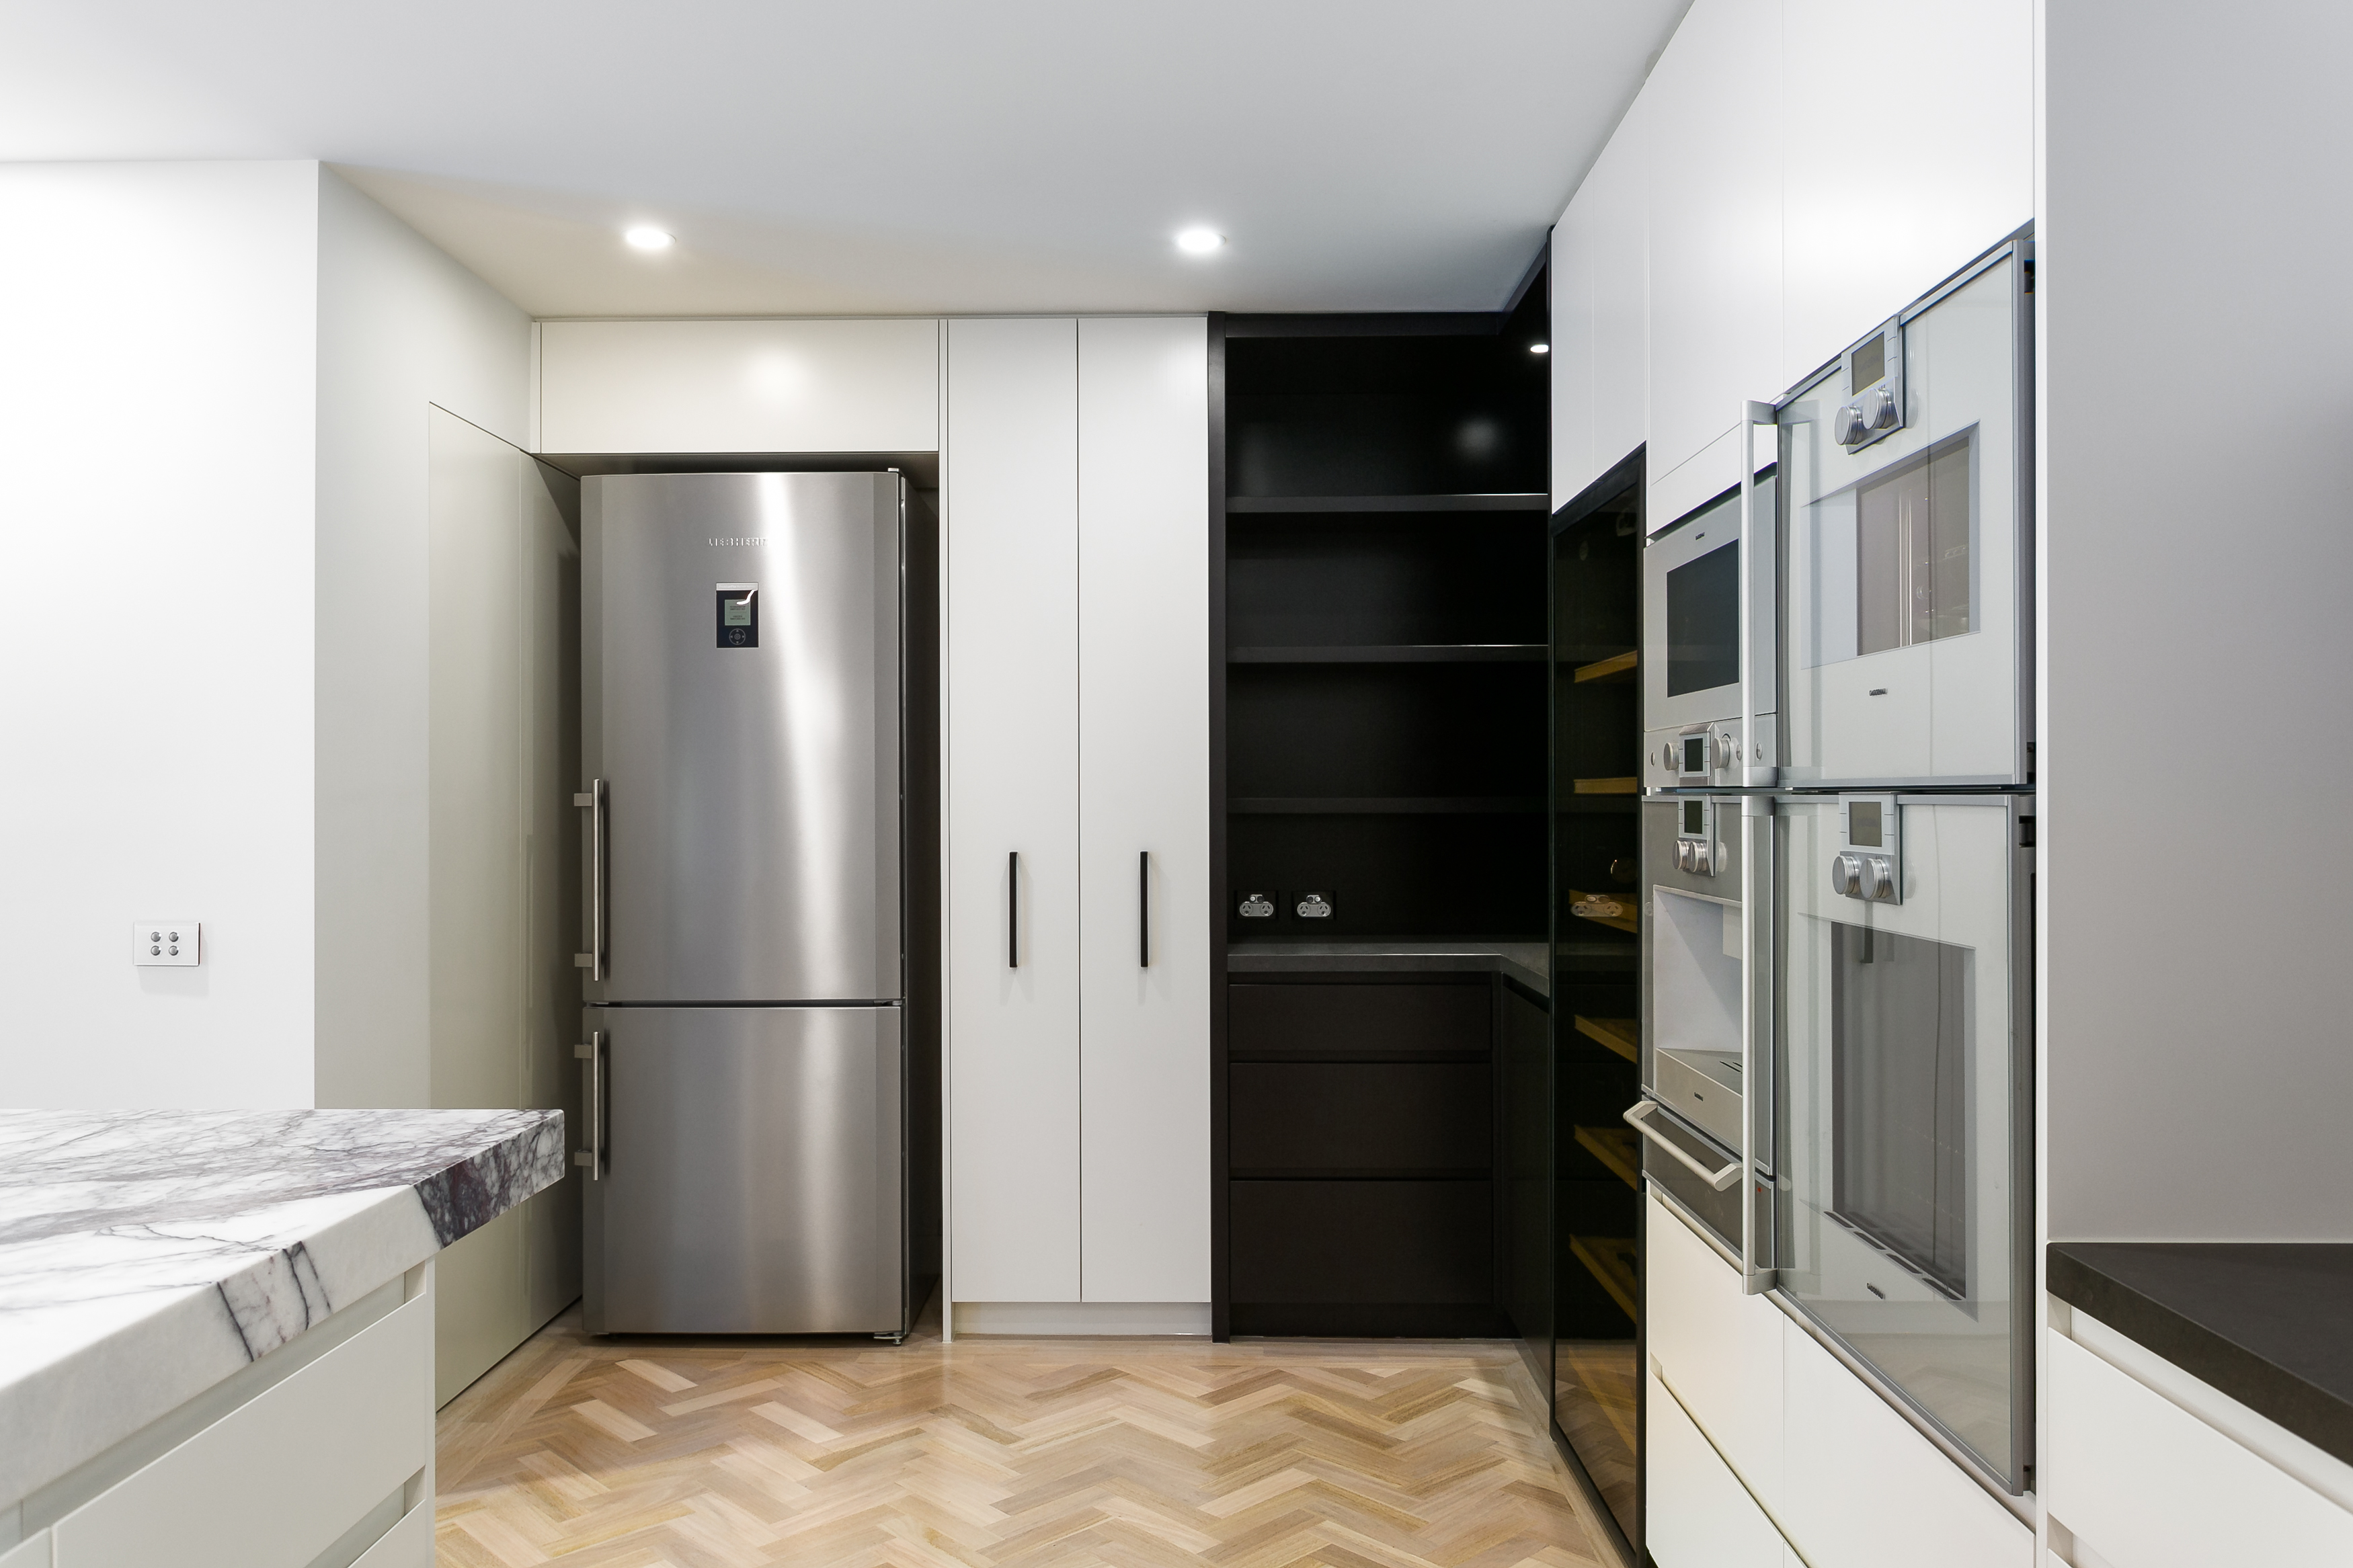 Highlighted with stainless steel appliances and dark wood corner shelving, the kitchen also hosts a full height built-in wine rack with glass door.